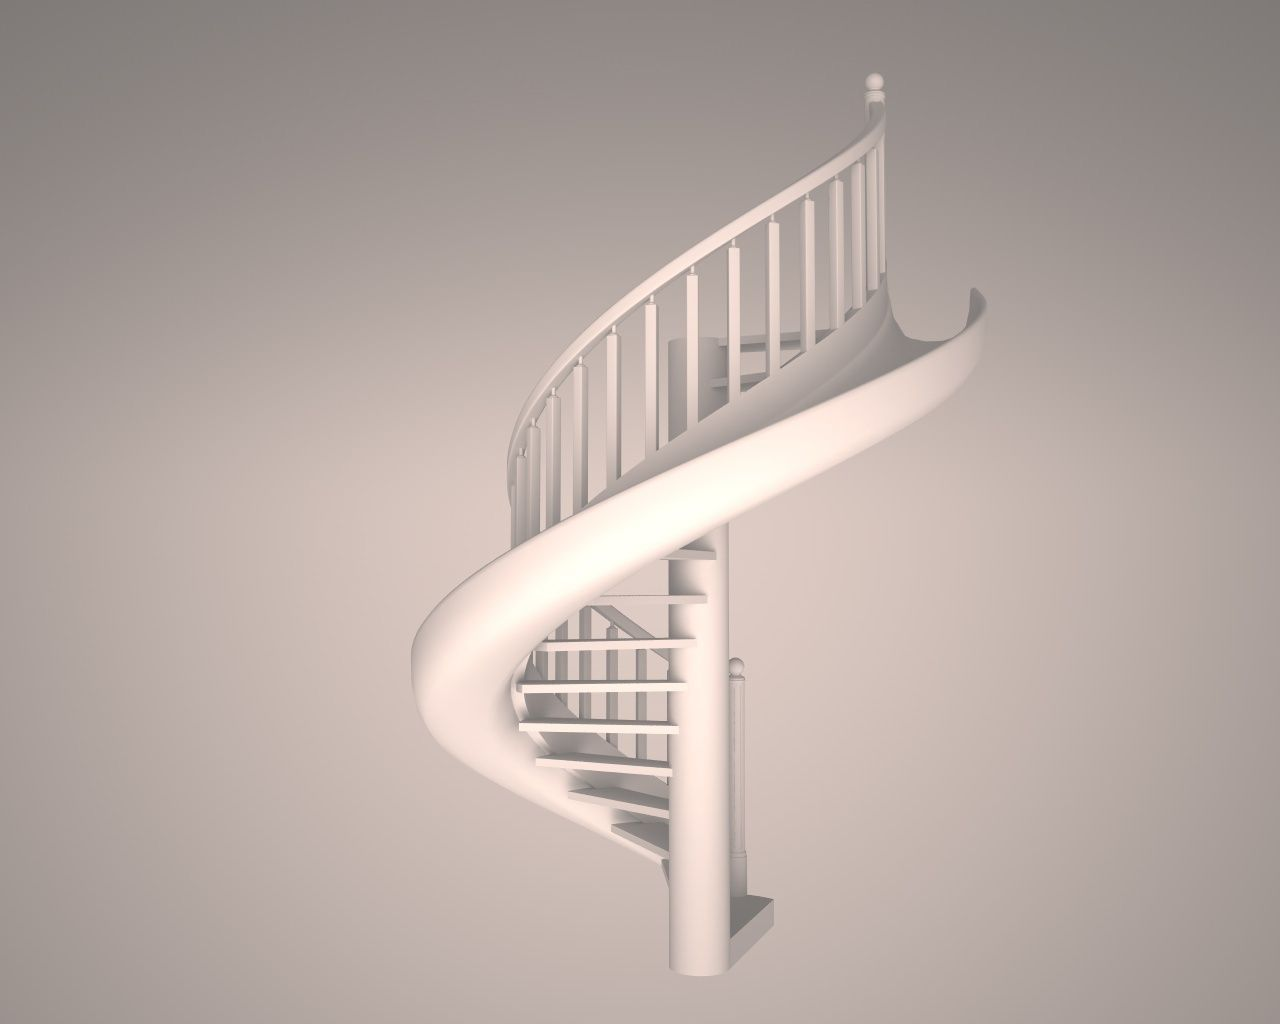 ... Wooden Spiral Staircase 3d Model Obj Mtl 3ds Fbx C4d 3 ...